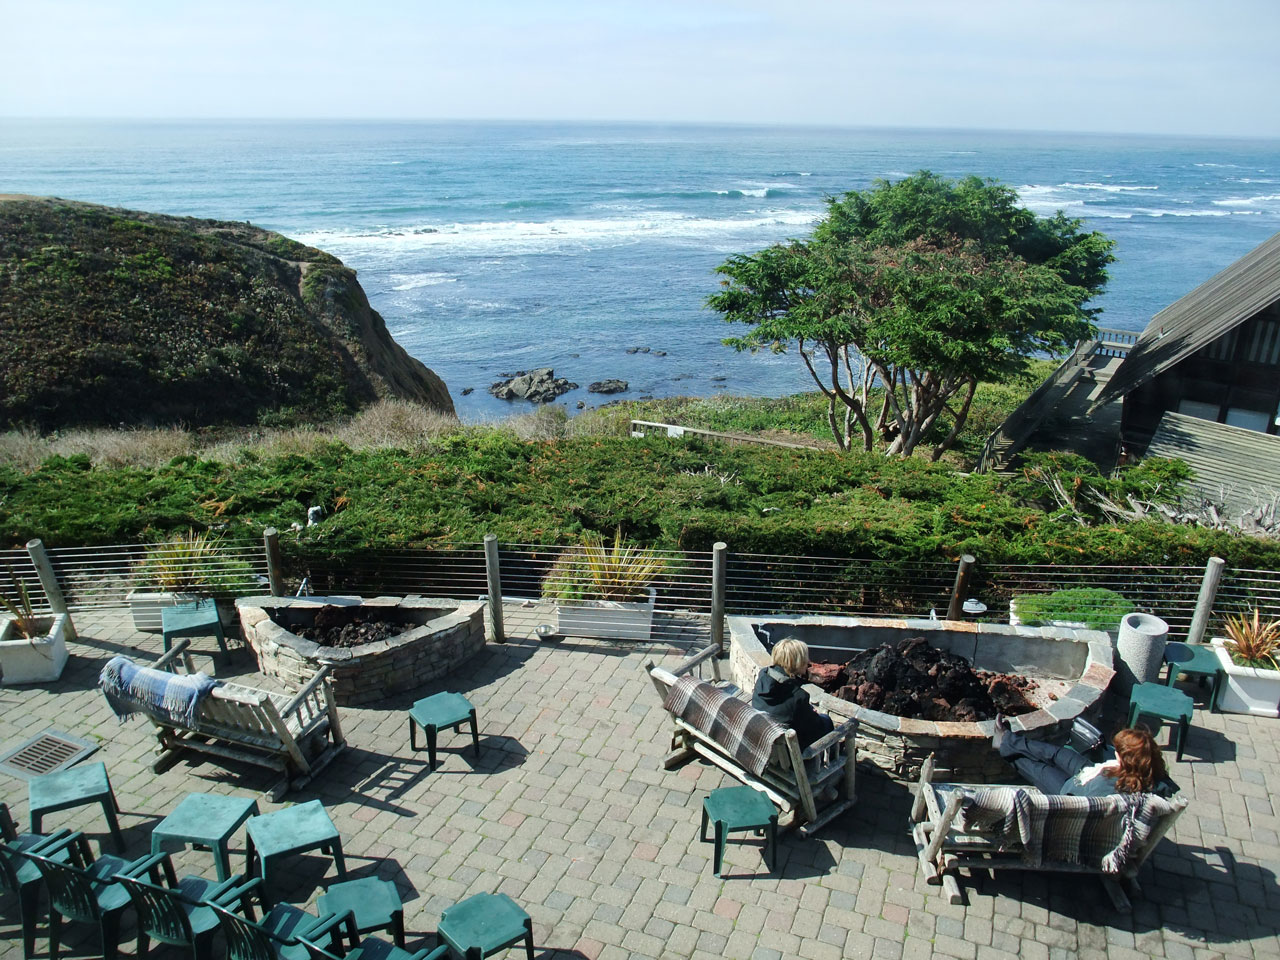 You'll be overlooking the ocean with your pup at Moss Beach Distillery.